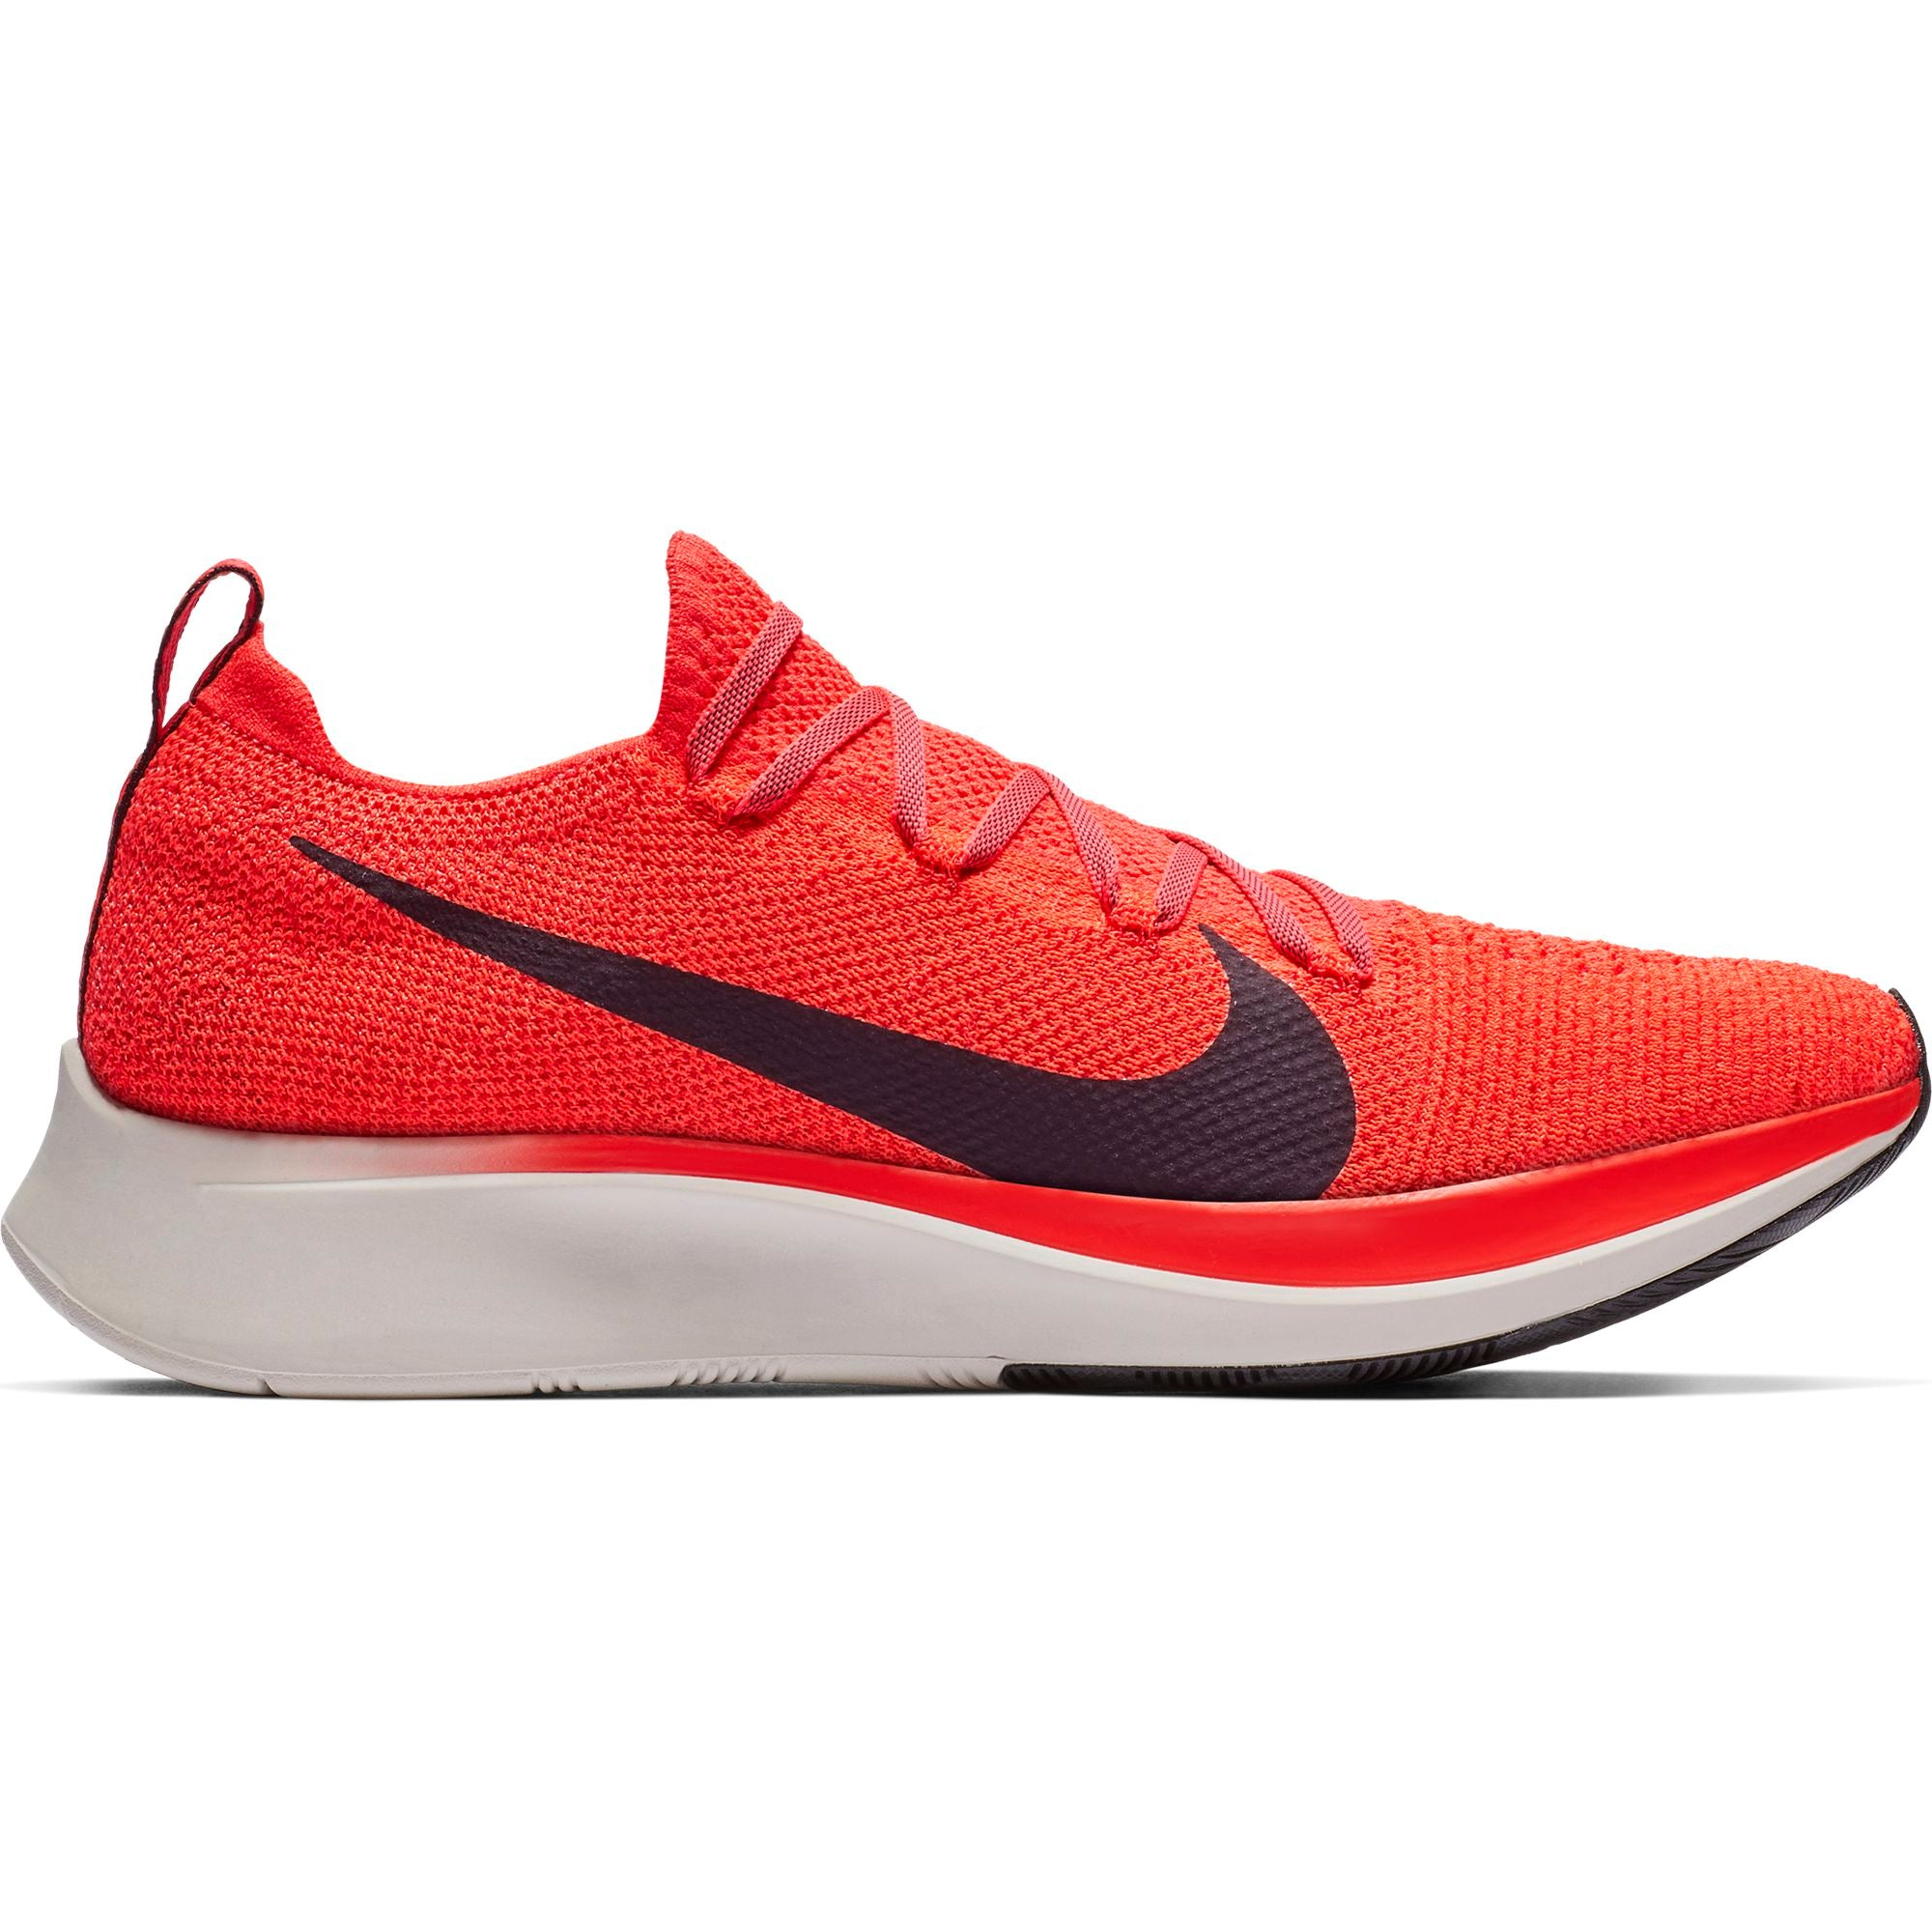 big sale 3a264 922de Men s Zoom Fly Flyknit Running Shoe - Bright Crimson Total Crimson Uni –  Gazelle Sports